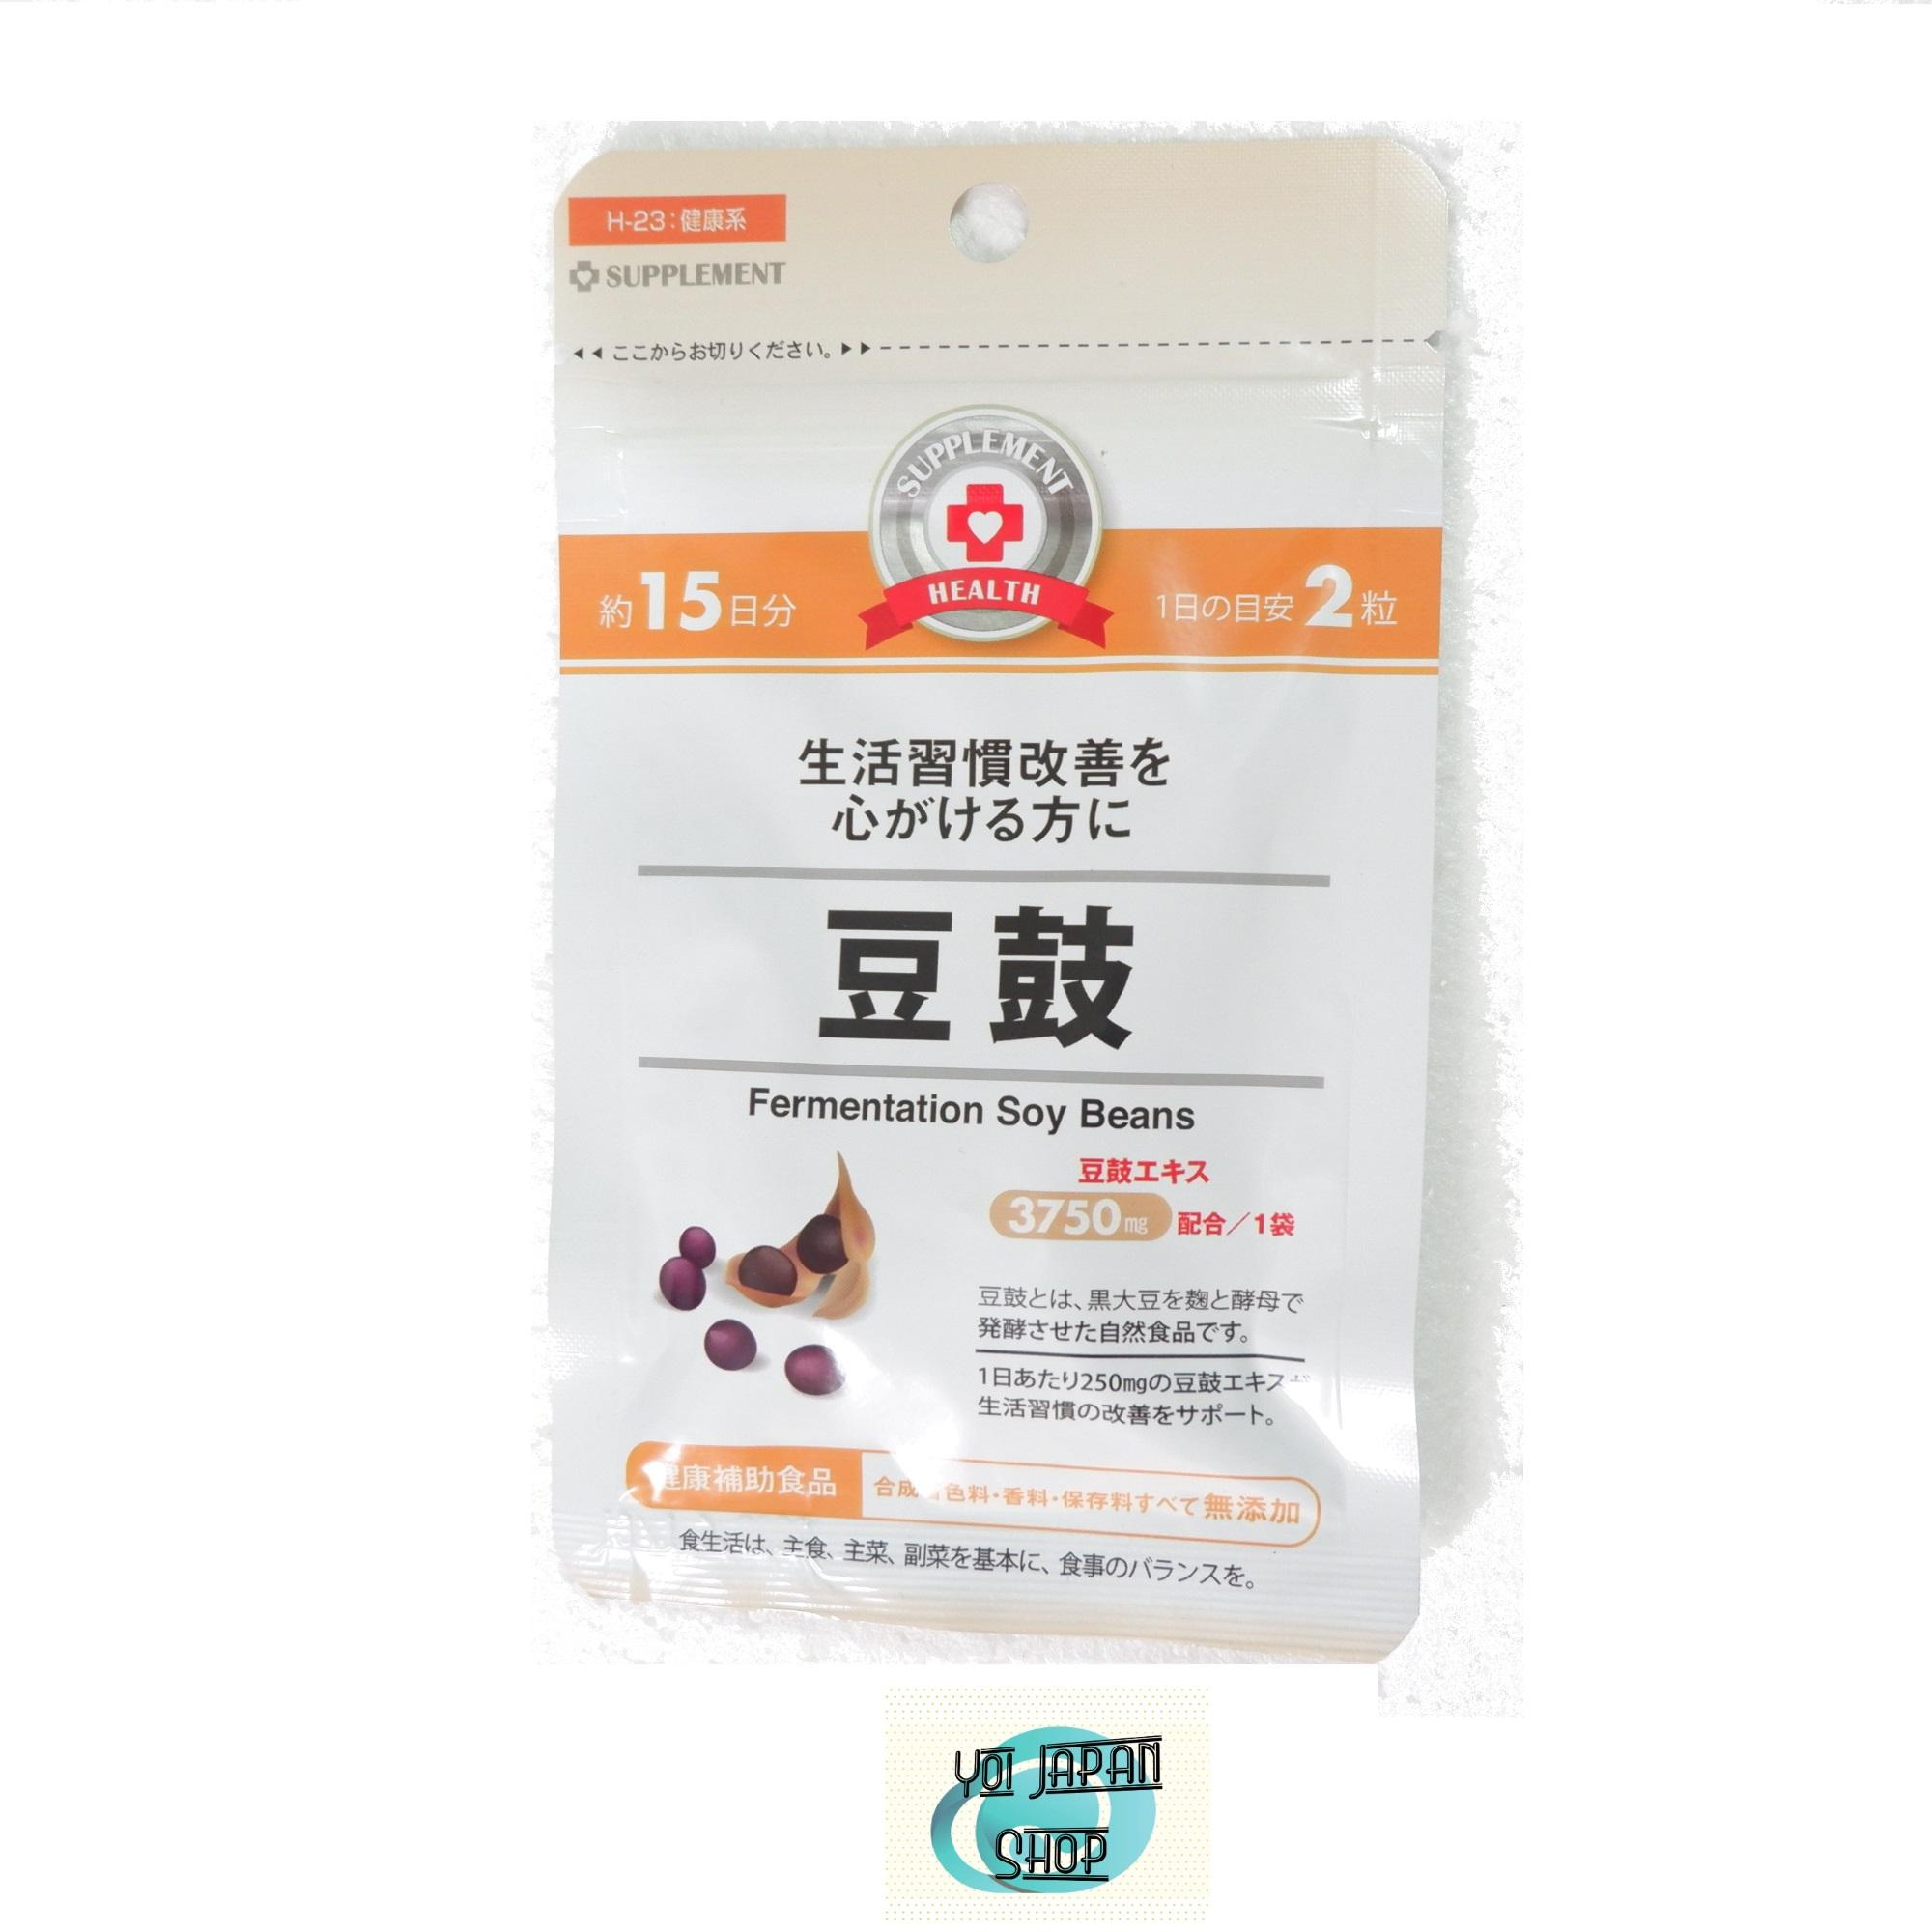 Can Do Fermented Soy Bean (Natto Fermented Super Soy Food Nattokinase for  Probiotics Cancer HBP Artherosclerosis Fatigue Pain Varicose)